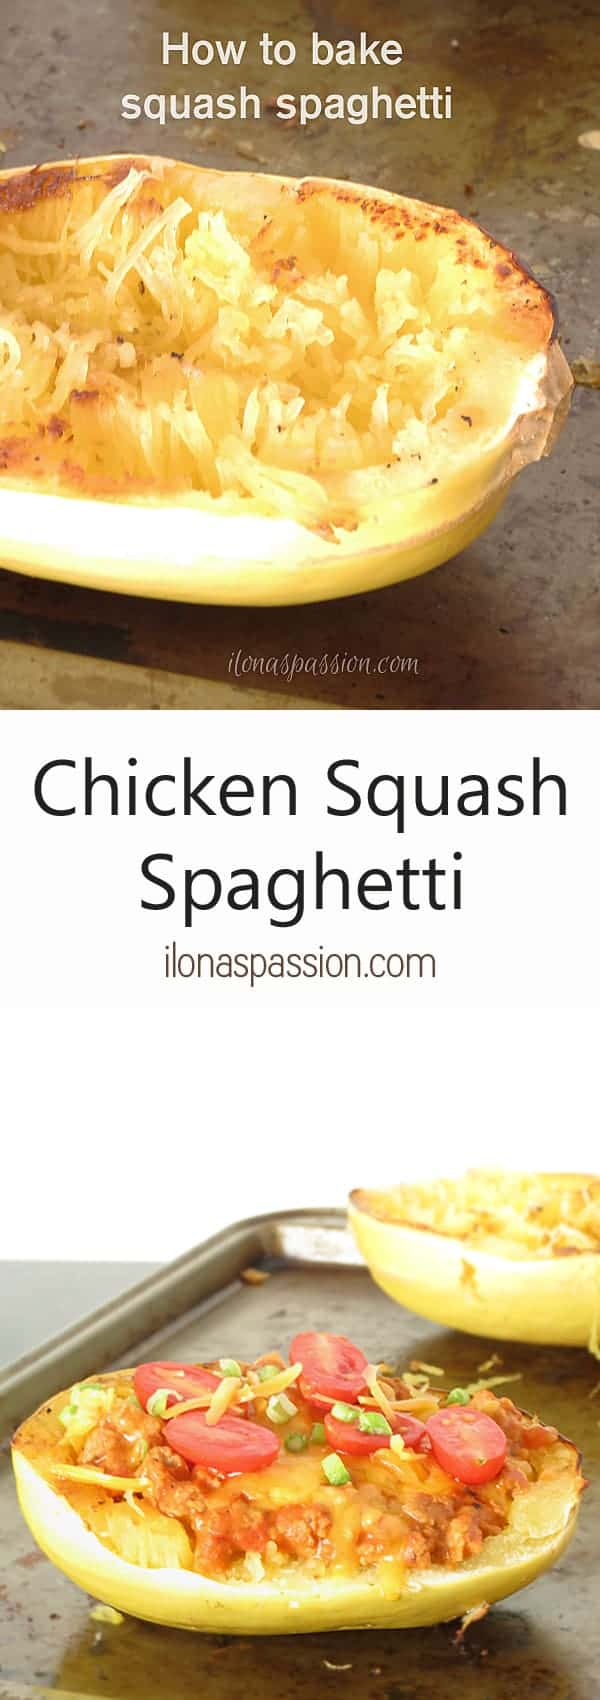 The Best Chicken Squash Spaghetti by ilonaspassion.com